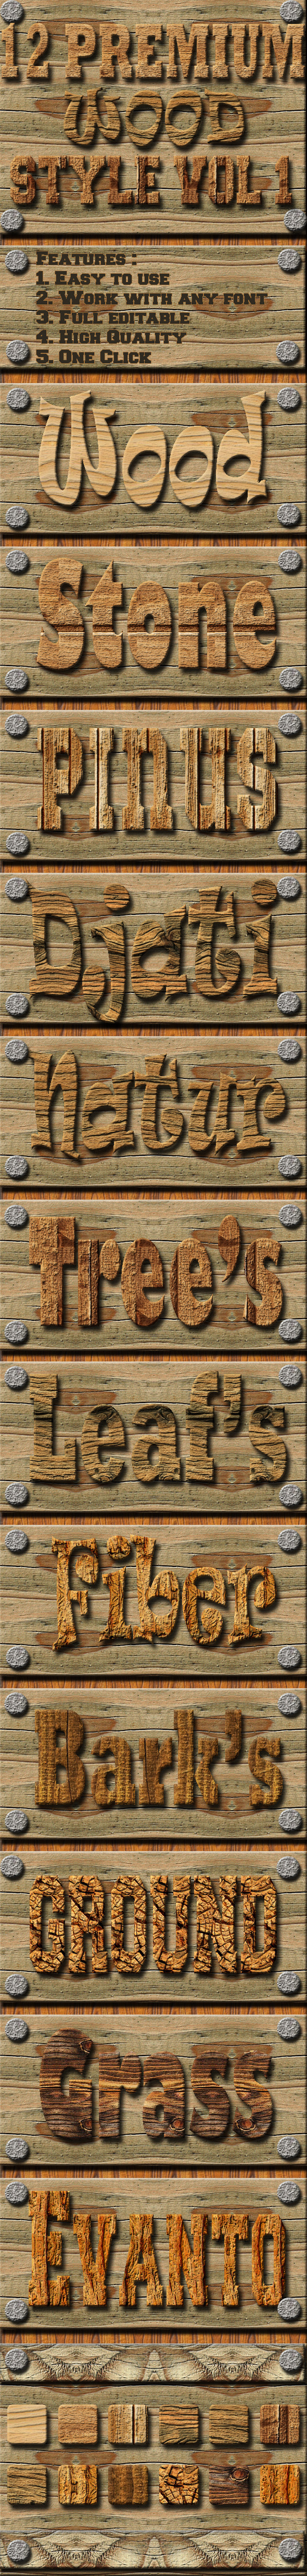 12 Wood Text Effect Style Vol 1 - Text Effects Styles